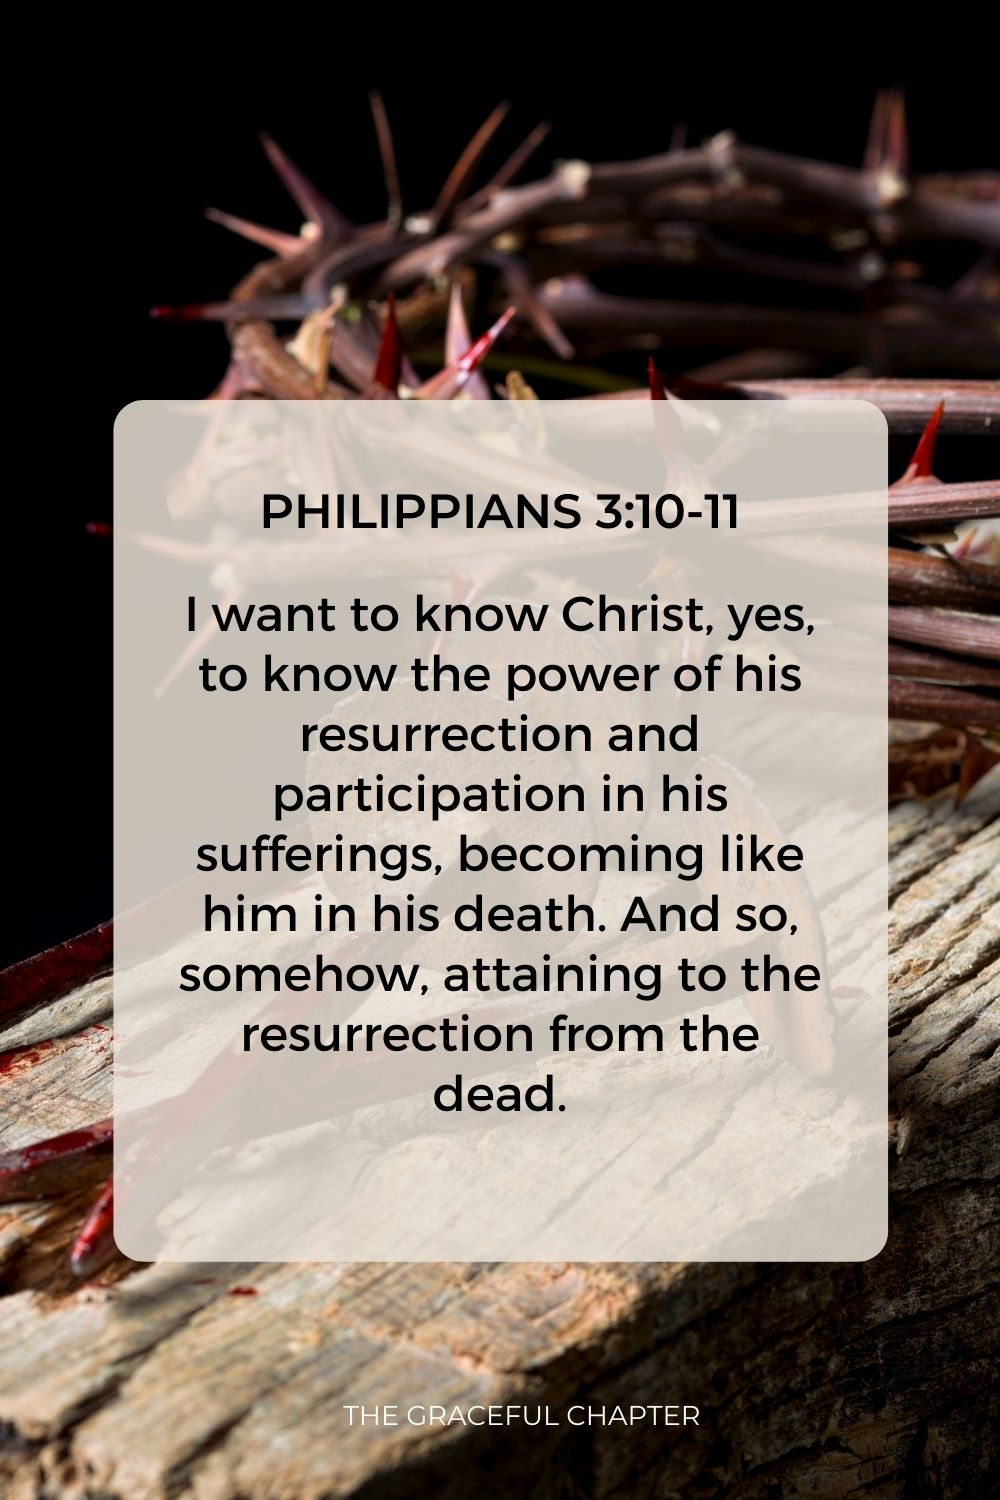 I want to know Christ, yes, to know the power of his resurrection and participation in his sufferings, becoming like him in his death. And so, somehow, attaining to the resurrection from the dead. Philippians 3:10-11